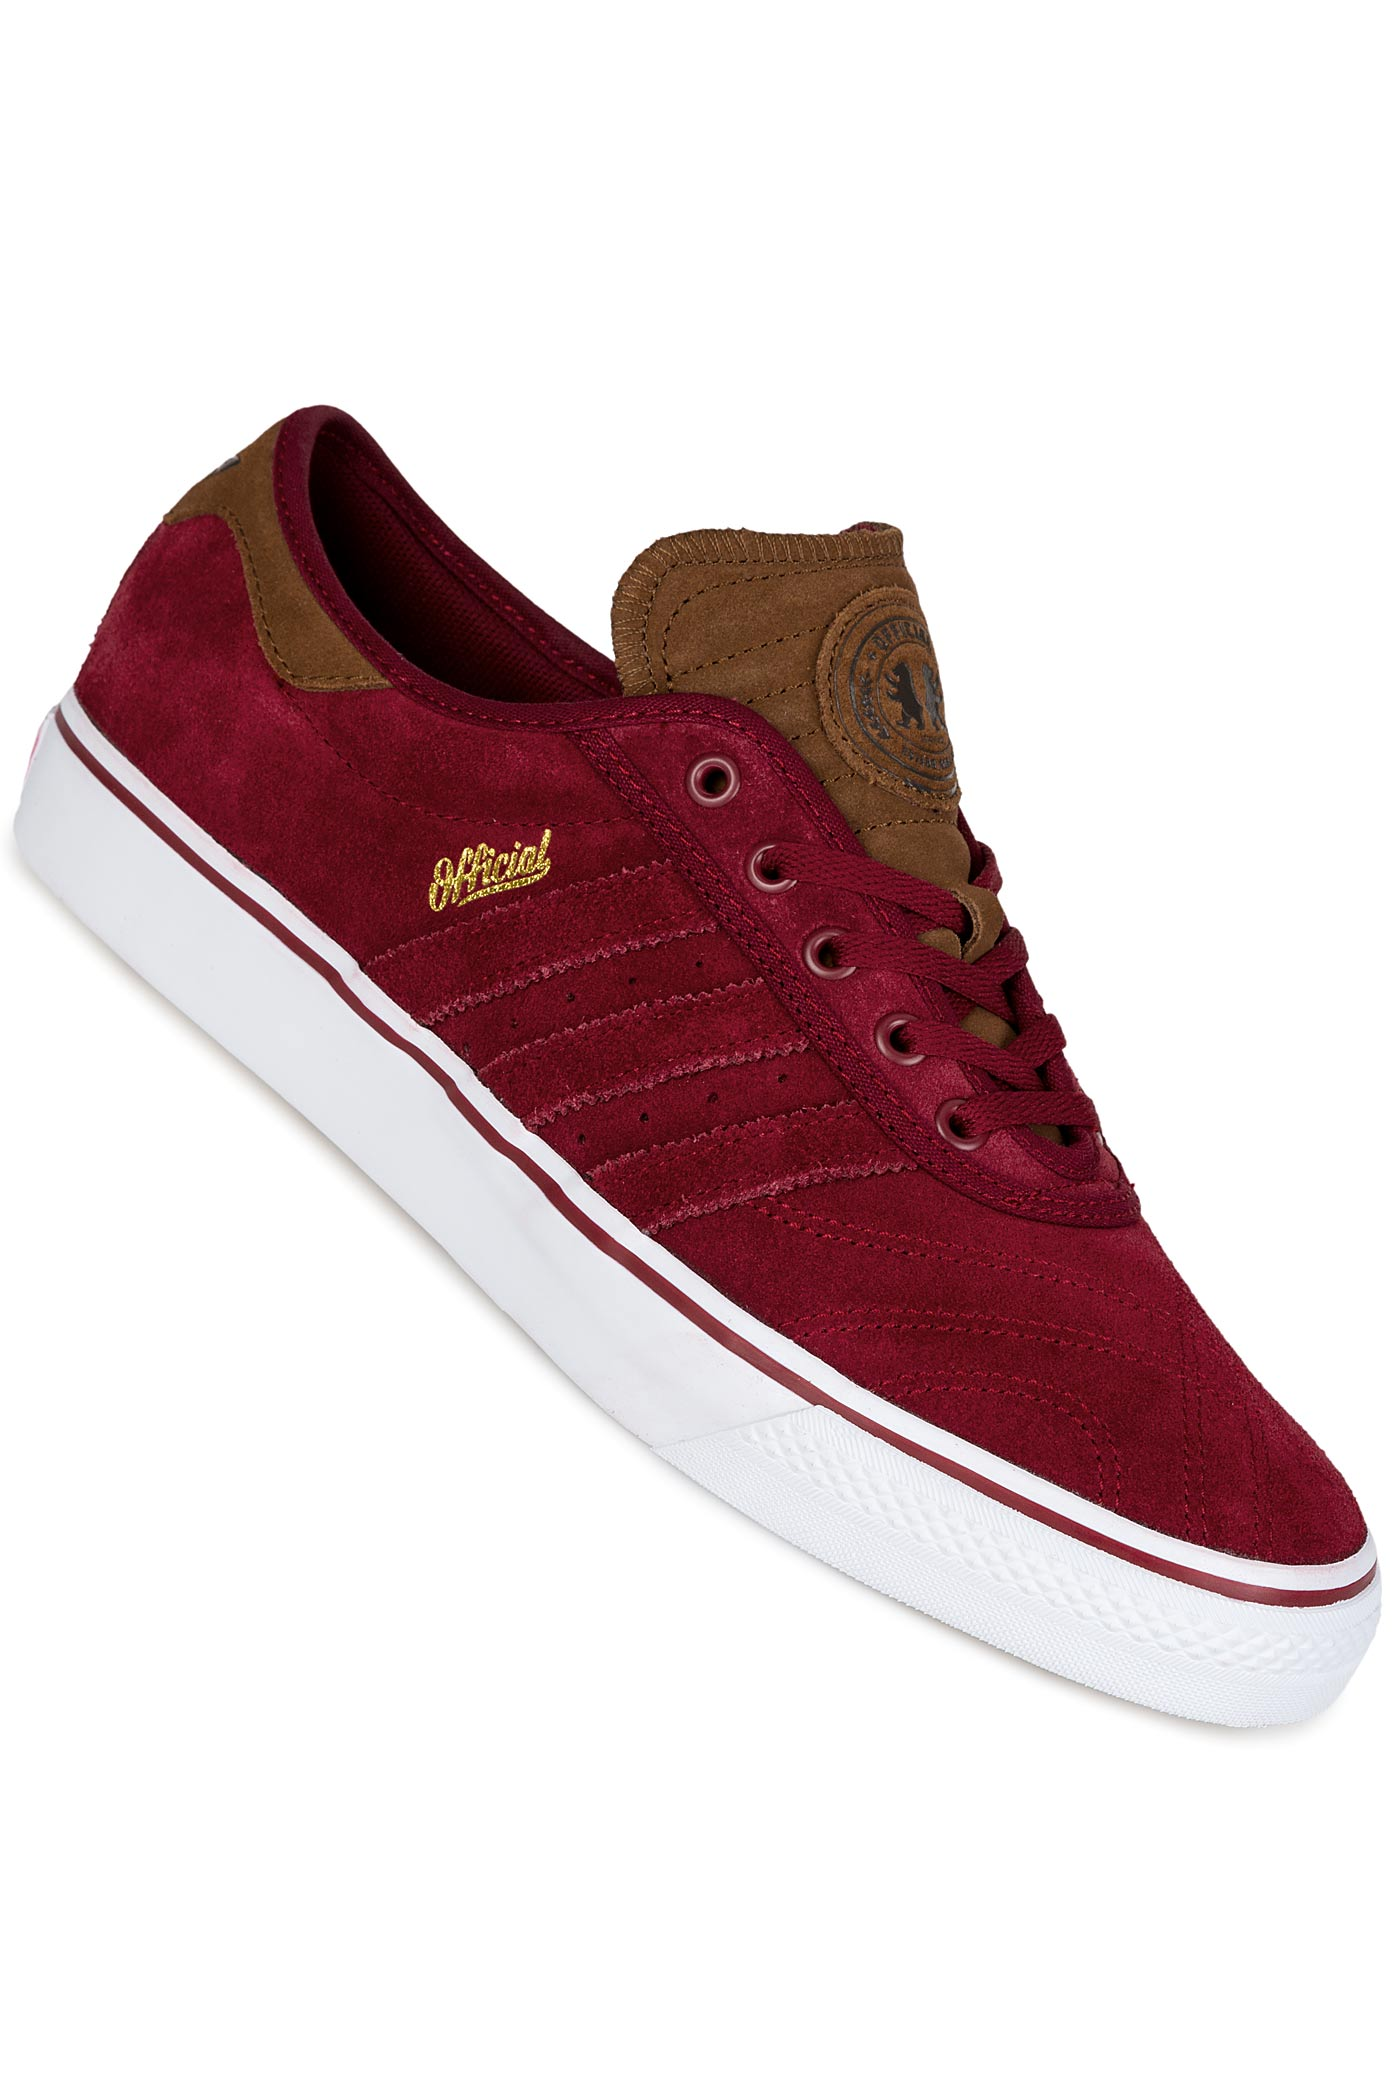 official photos 0086b 9f733 adidas Skateboarding x Official Adi Ease Premiere ADV Shoe (burgundy white)